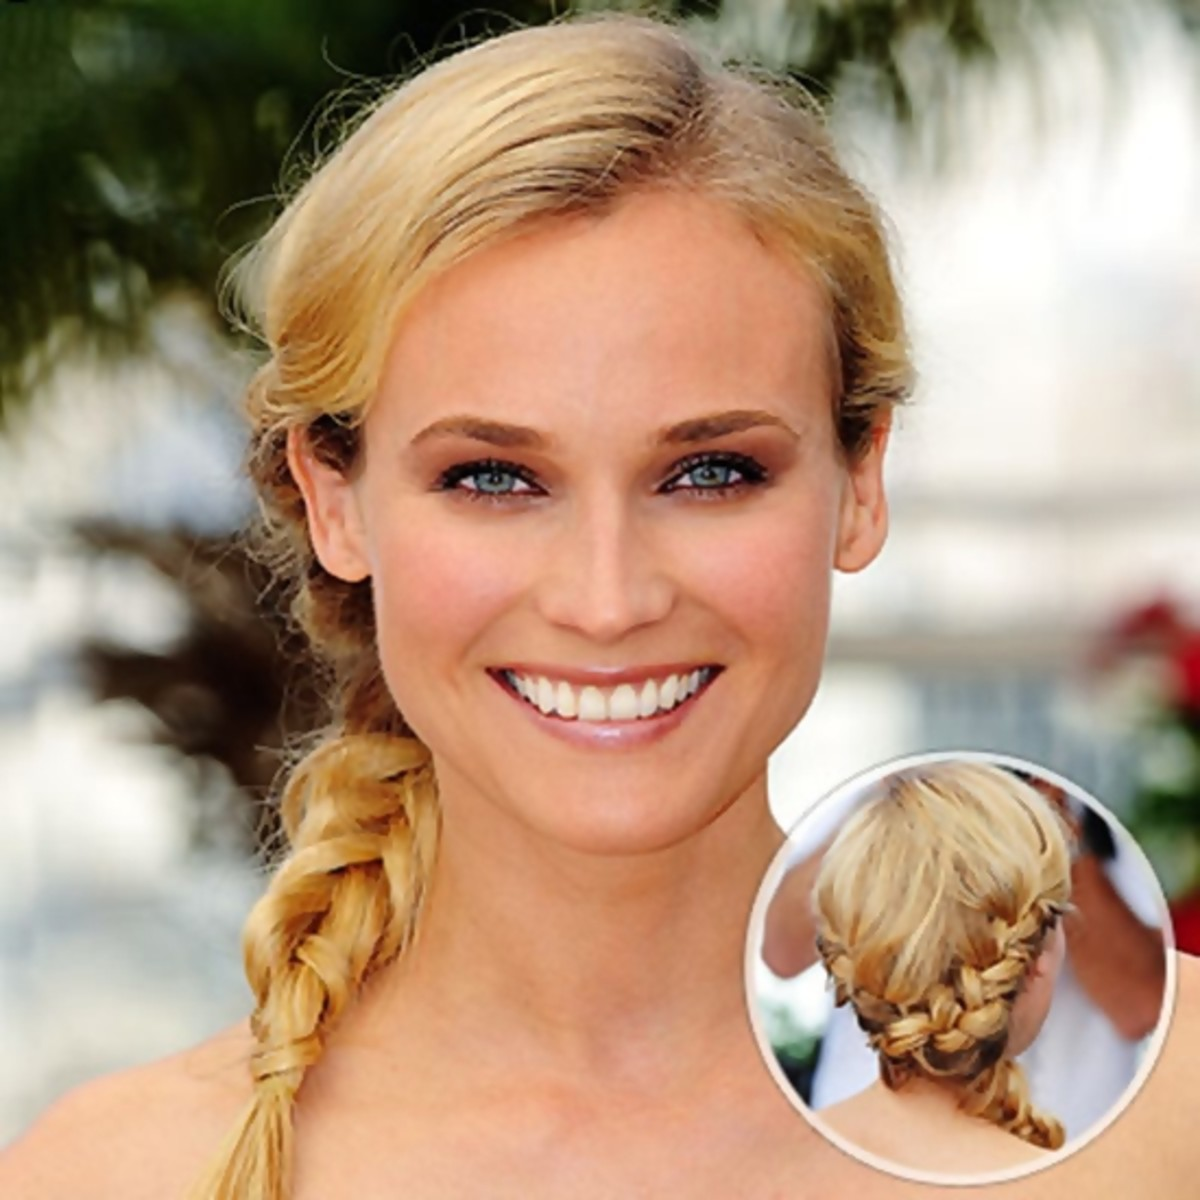 Diane Kruger - 2013 Braided Hairstyles - Fun Braids and Braided Updo Hair Styles